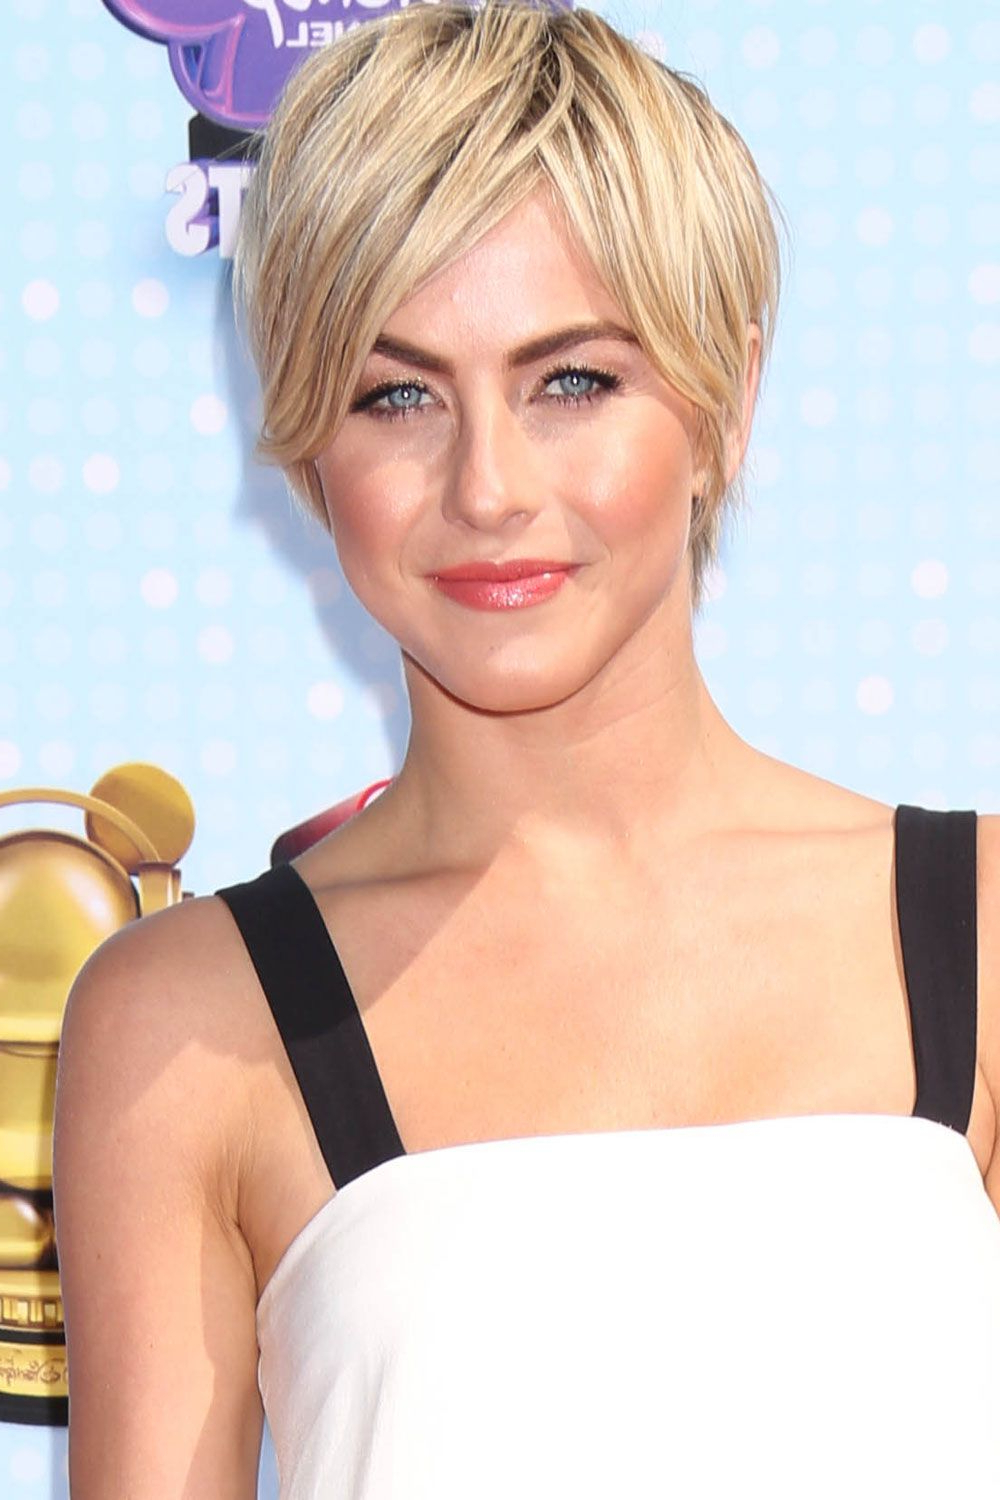 Most Stylish Celebrity Short Hairstyles   Faces   Pinterest   Disney In Julianne Hough Short Hairstyles (View 19 of 25)